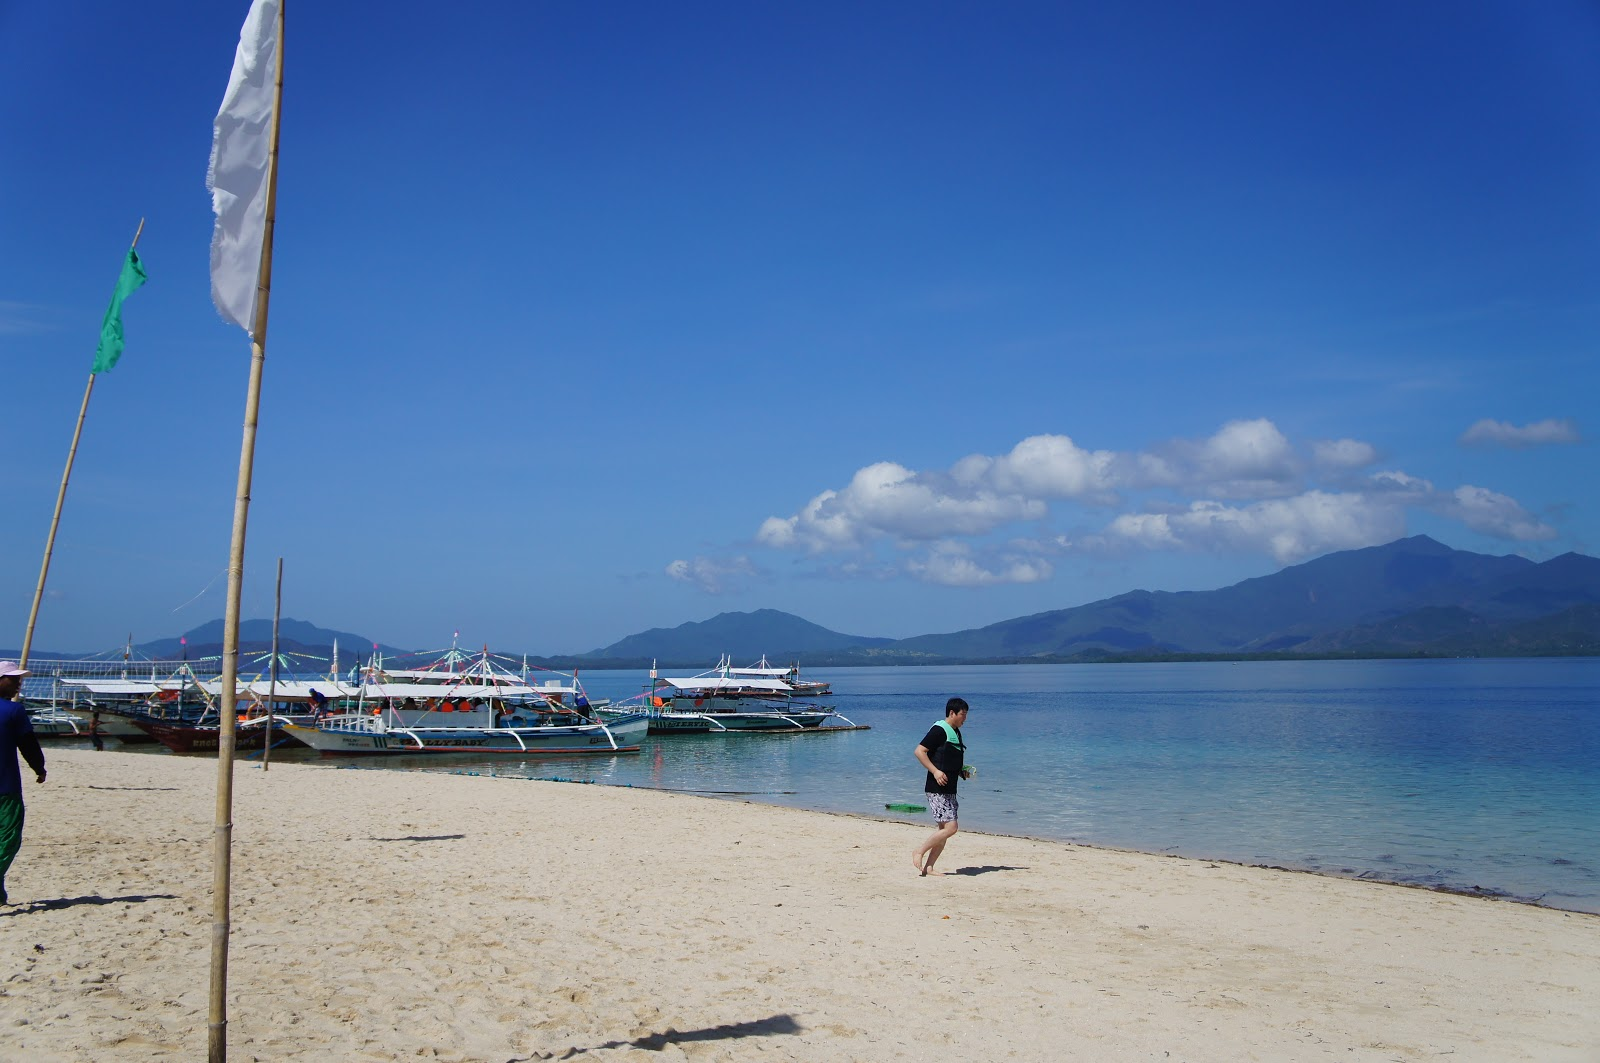 Honda Bay Island Hopping Tour Palawan Philippines